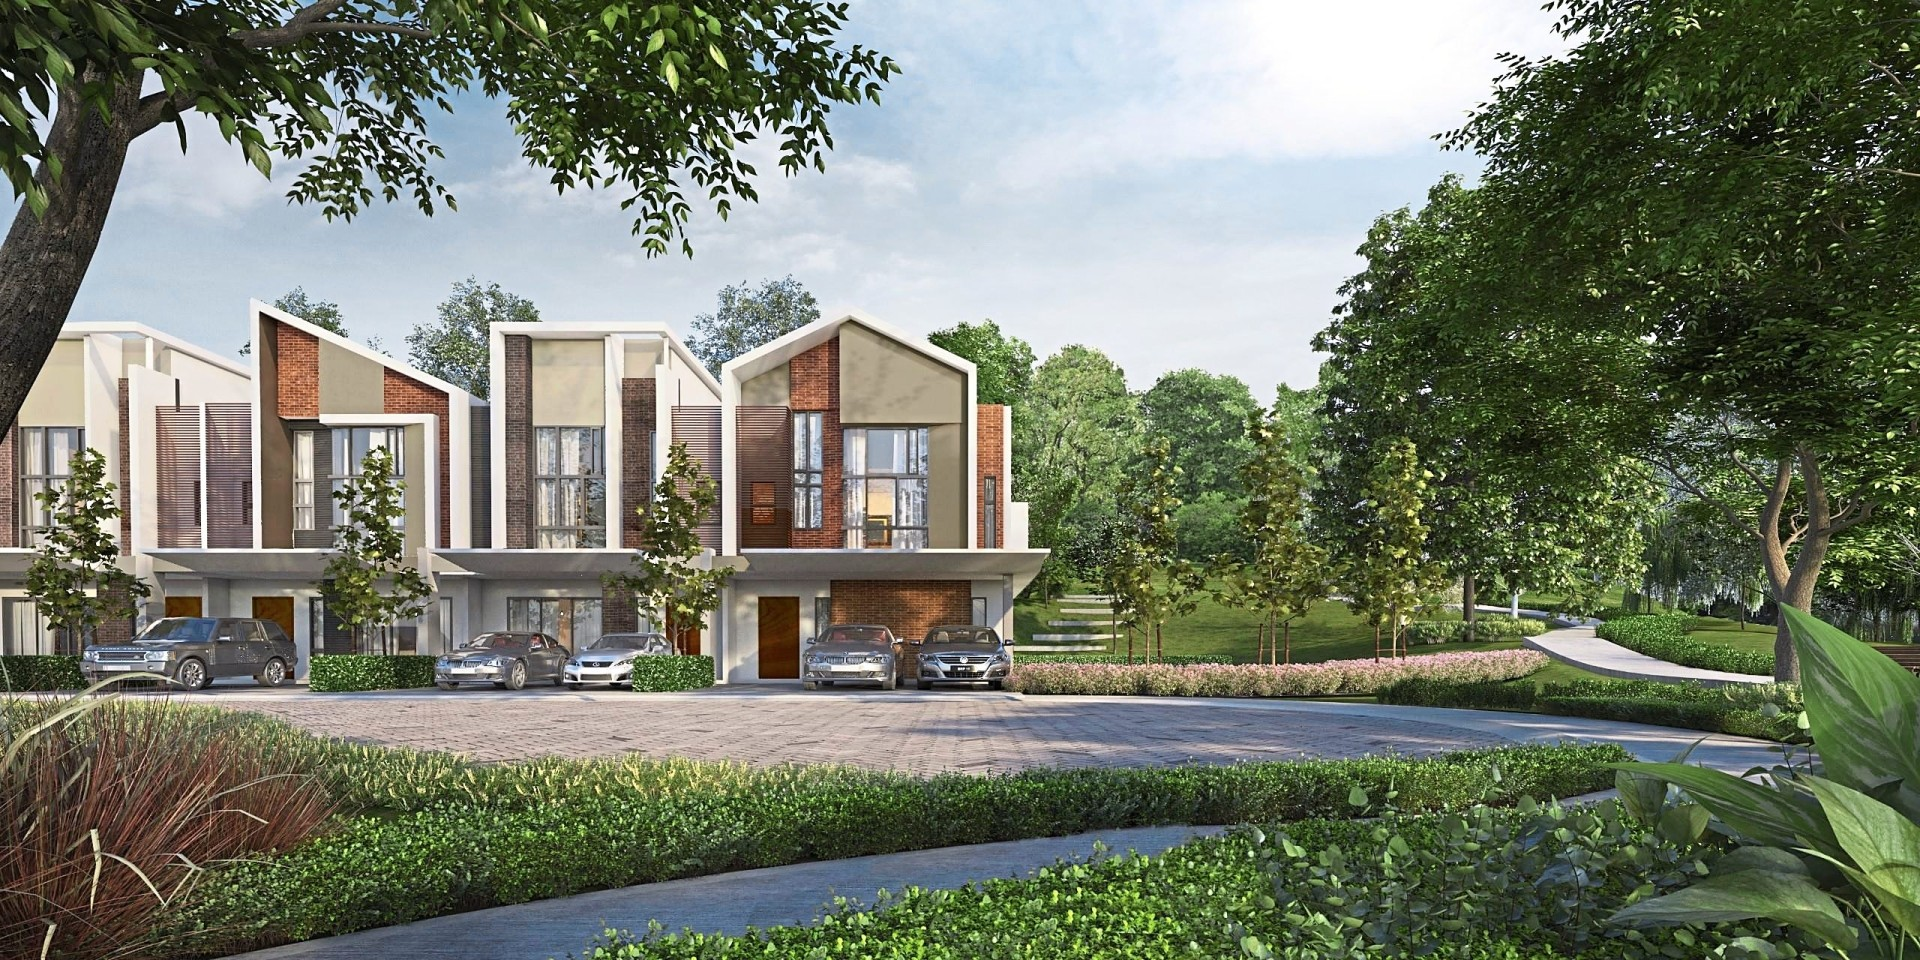 Joya superlink homes are the latest launch in Gamuda Gardens.